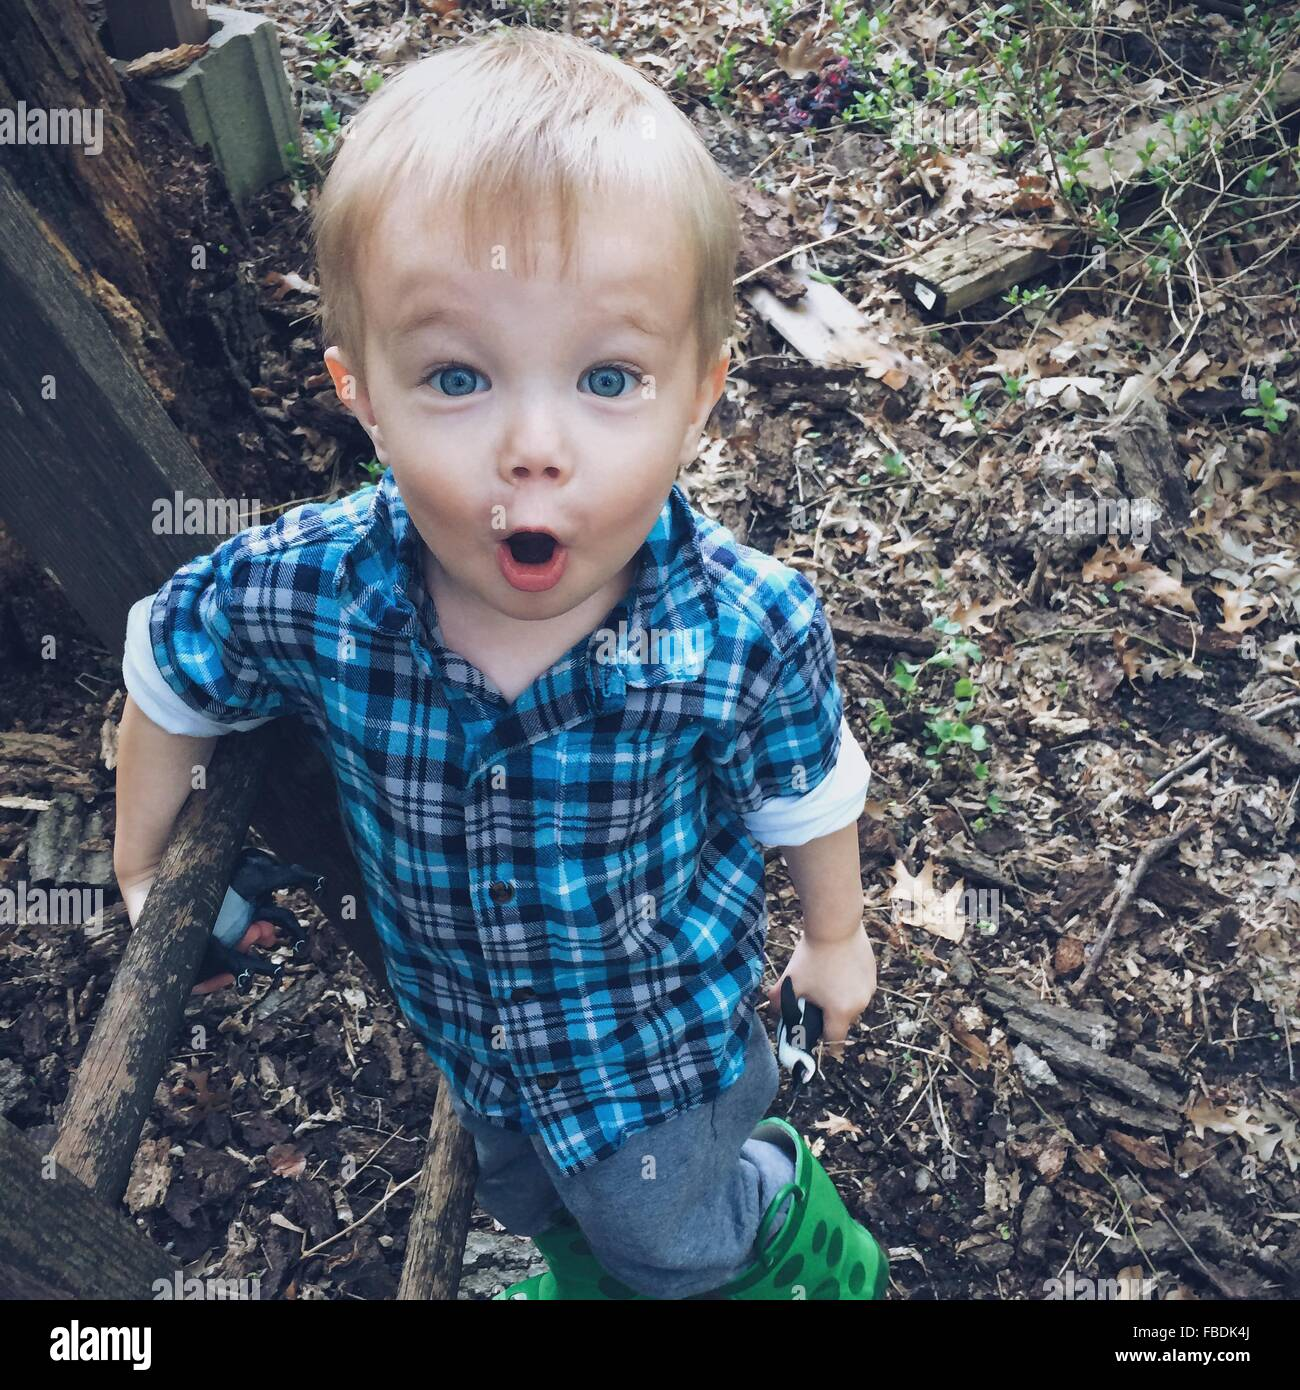 Boy With Mouth Open Looking Shocked - Stock Image